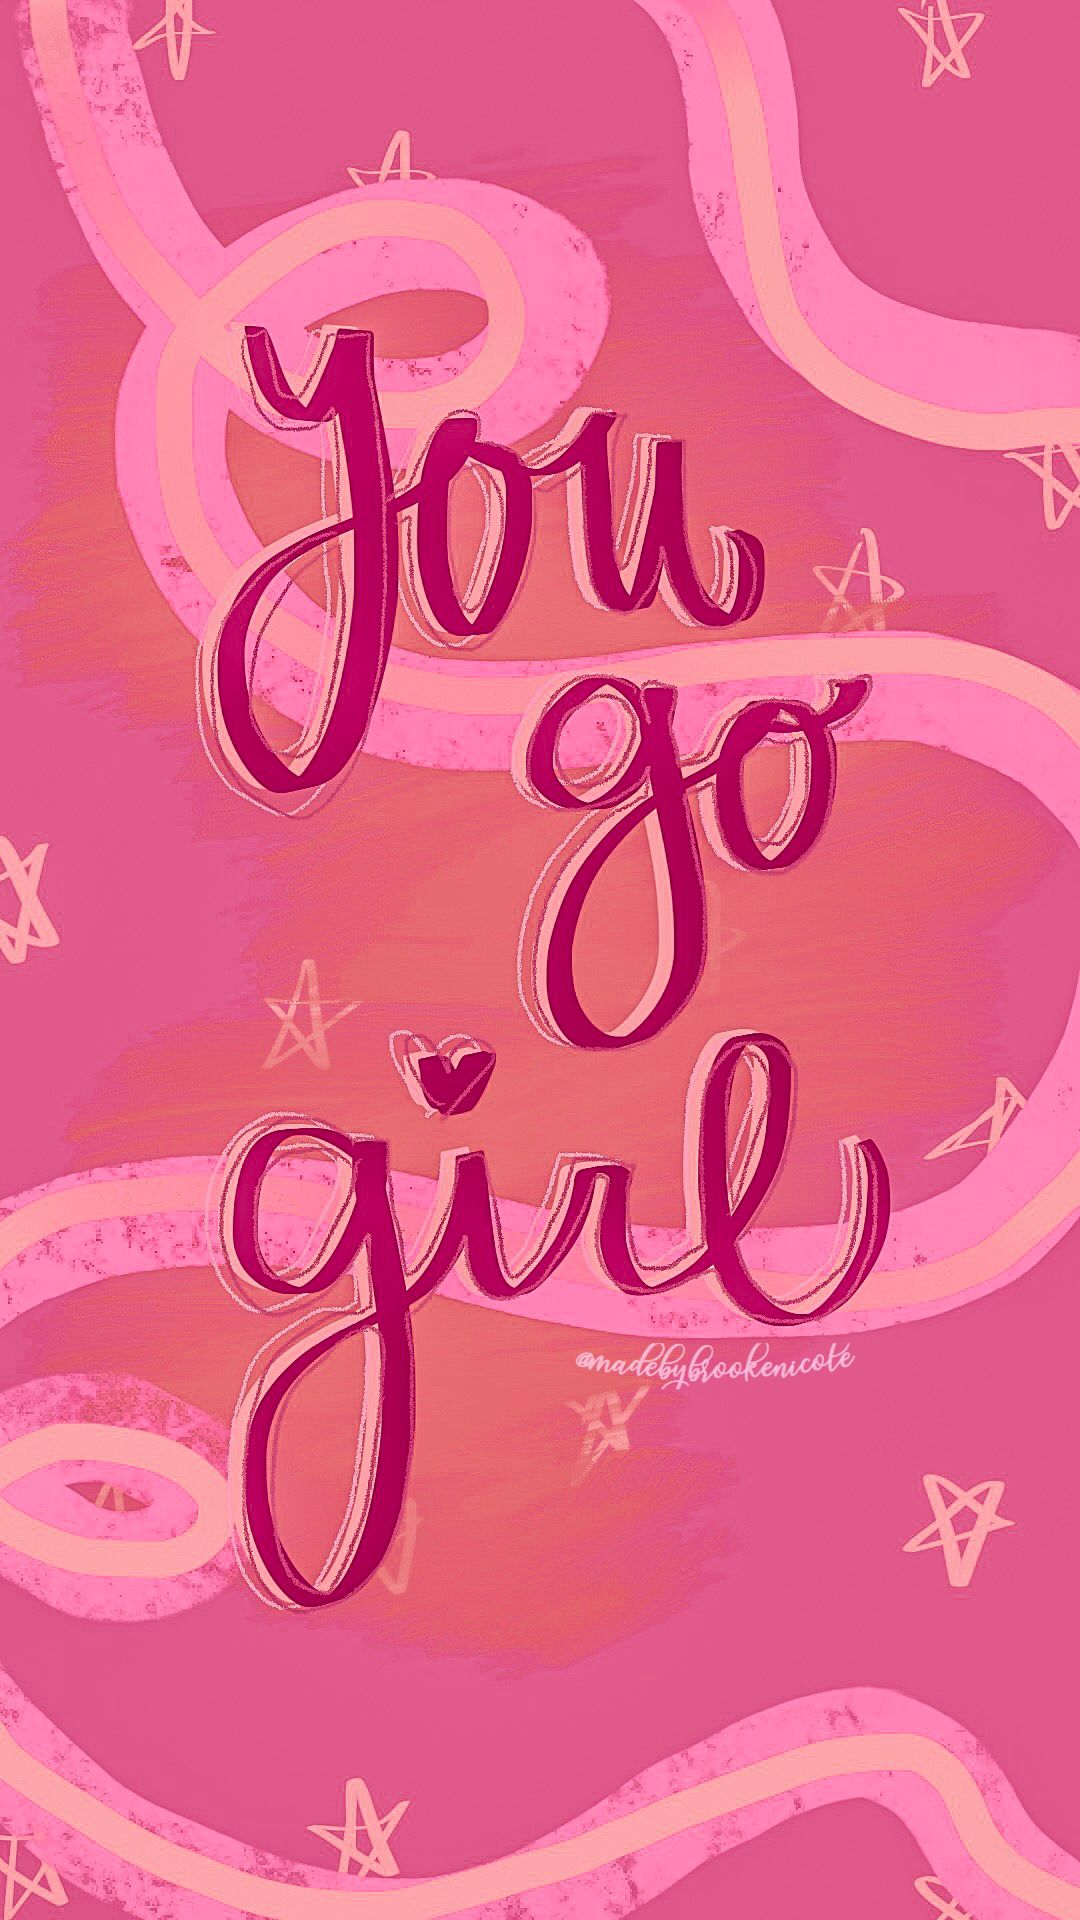 Inspirational wallpaper / go girl/ pink / iPhone wallpaper